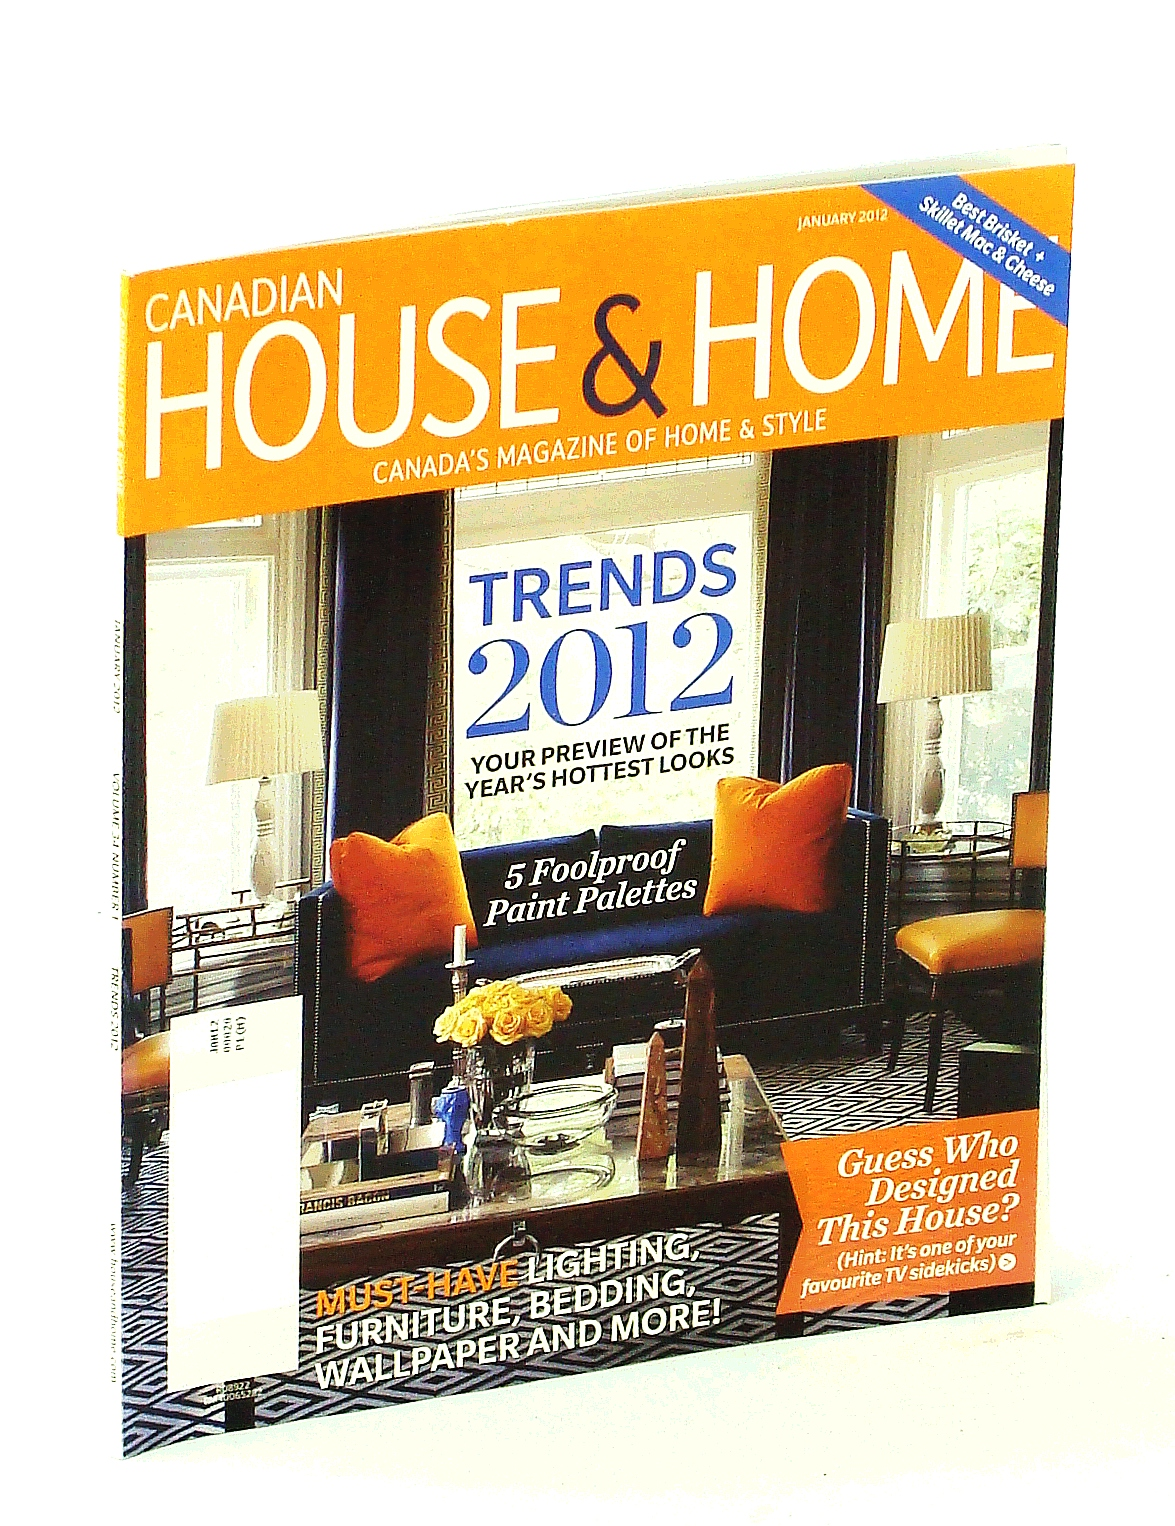 Image for Canadian House & Home - Canada's Magazine of Home & Style, January [Jan.] 2012 - Trends 2012